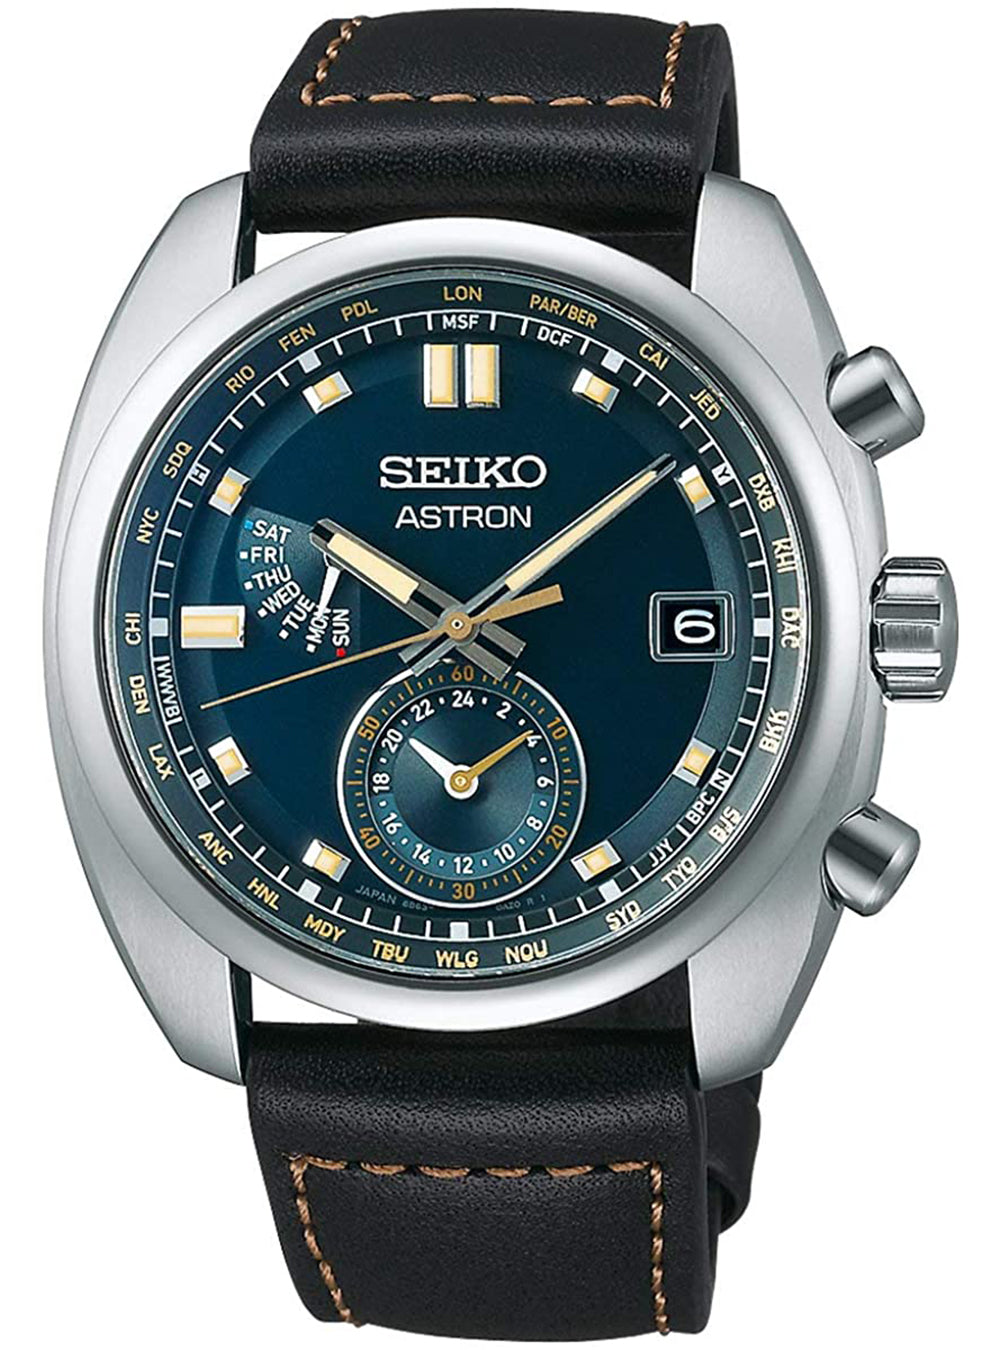 SEIKO ASTRON SBXY007 MADE IN JAPAN JDM